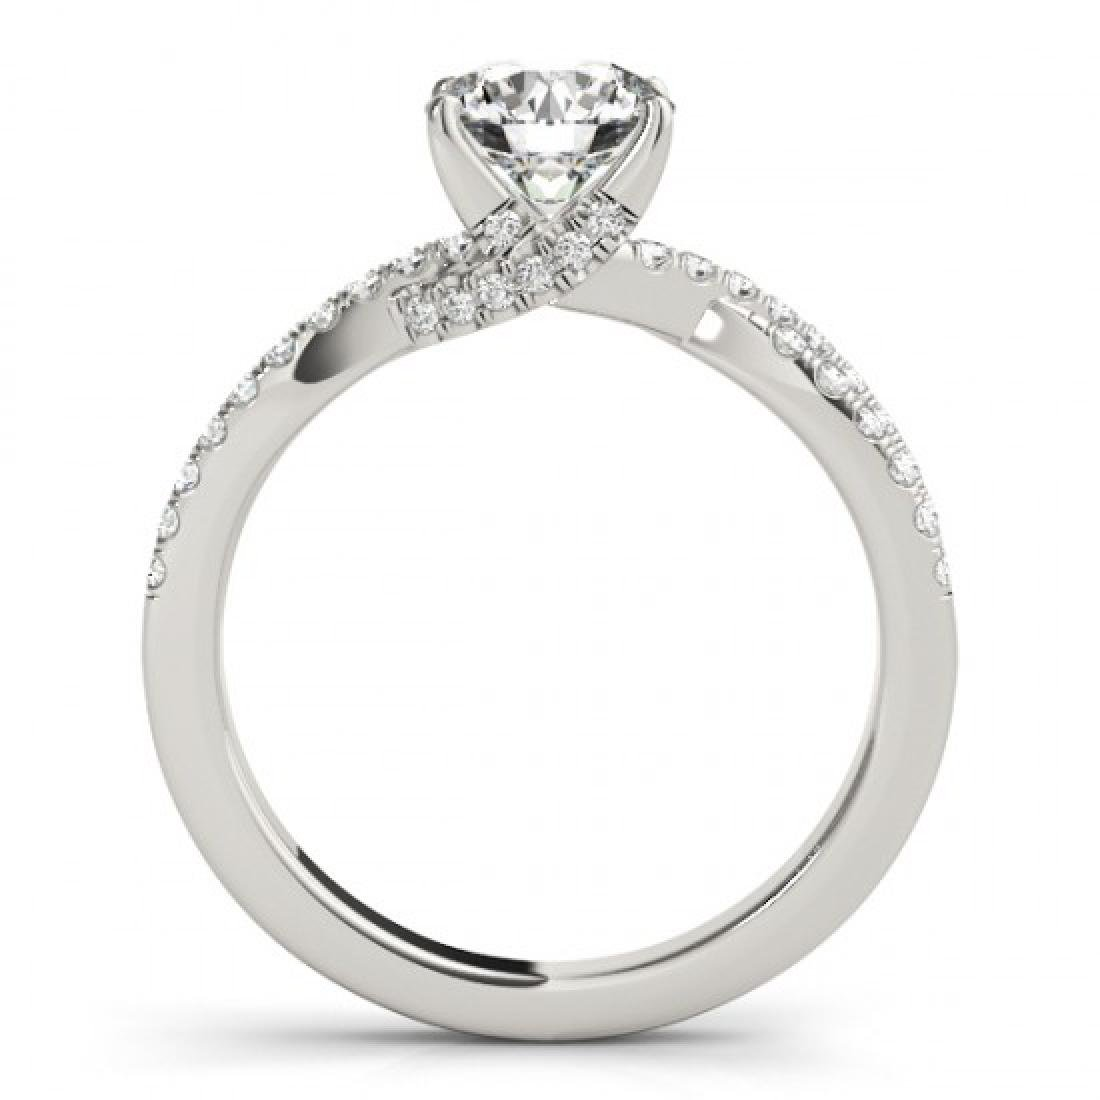 0.8 CTW Certified VS/SI Diamond Solitaire Ring 14K